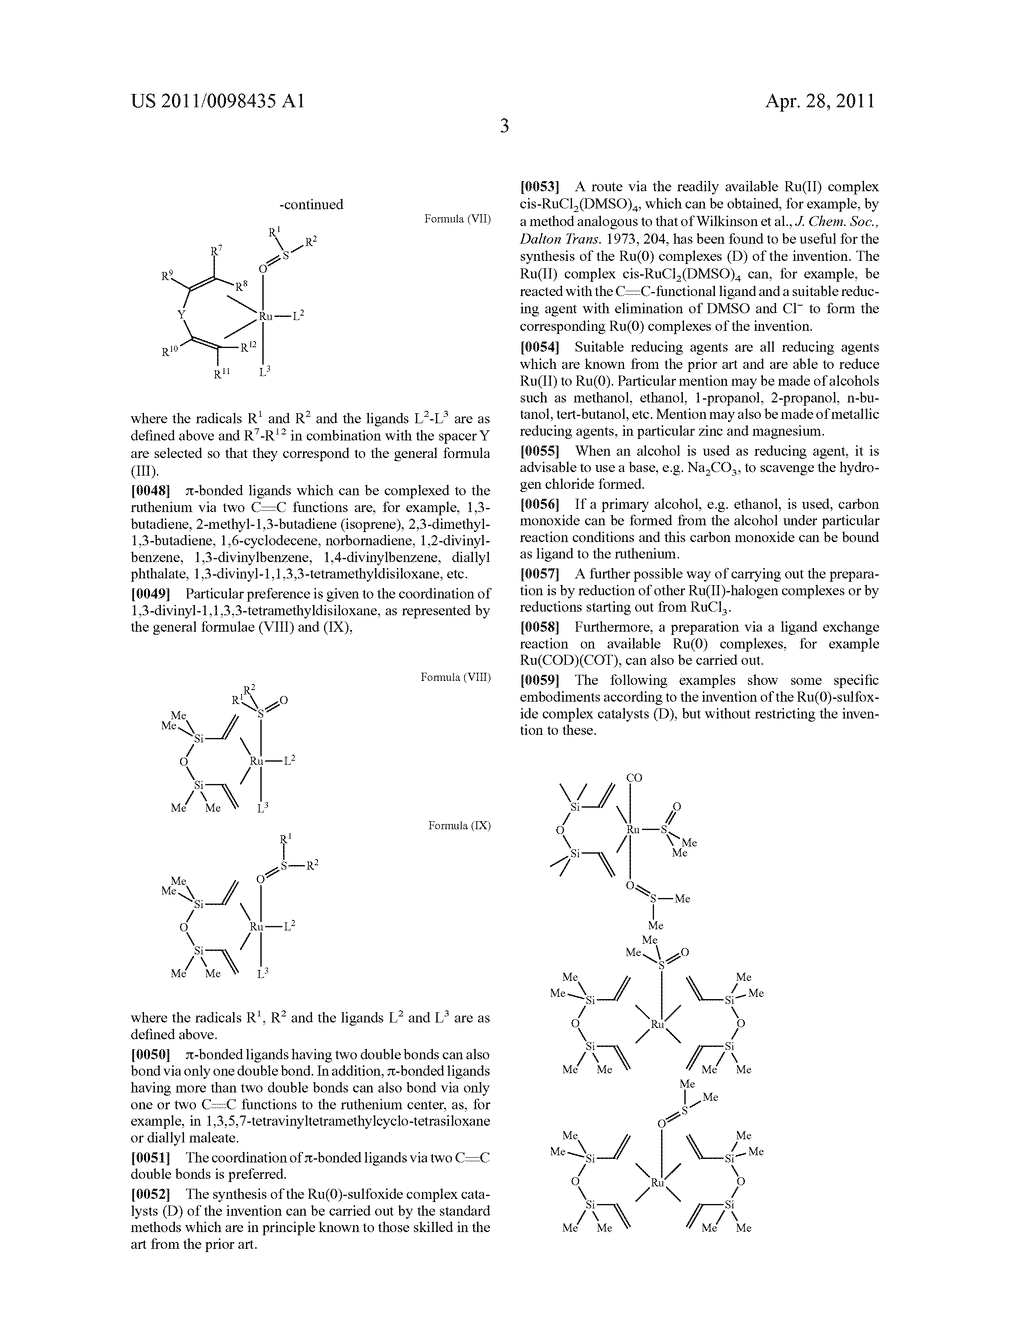 RU SULFOXIDE COMPLEXES, THEIR PREPARATION AND USE - diagram, schematic, and image 04